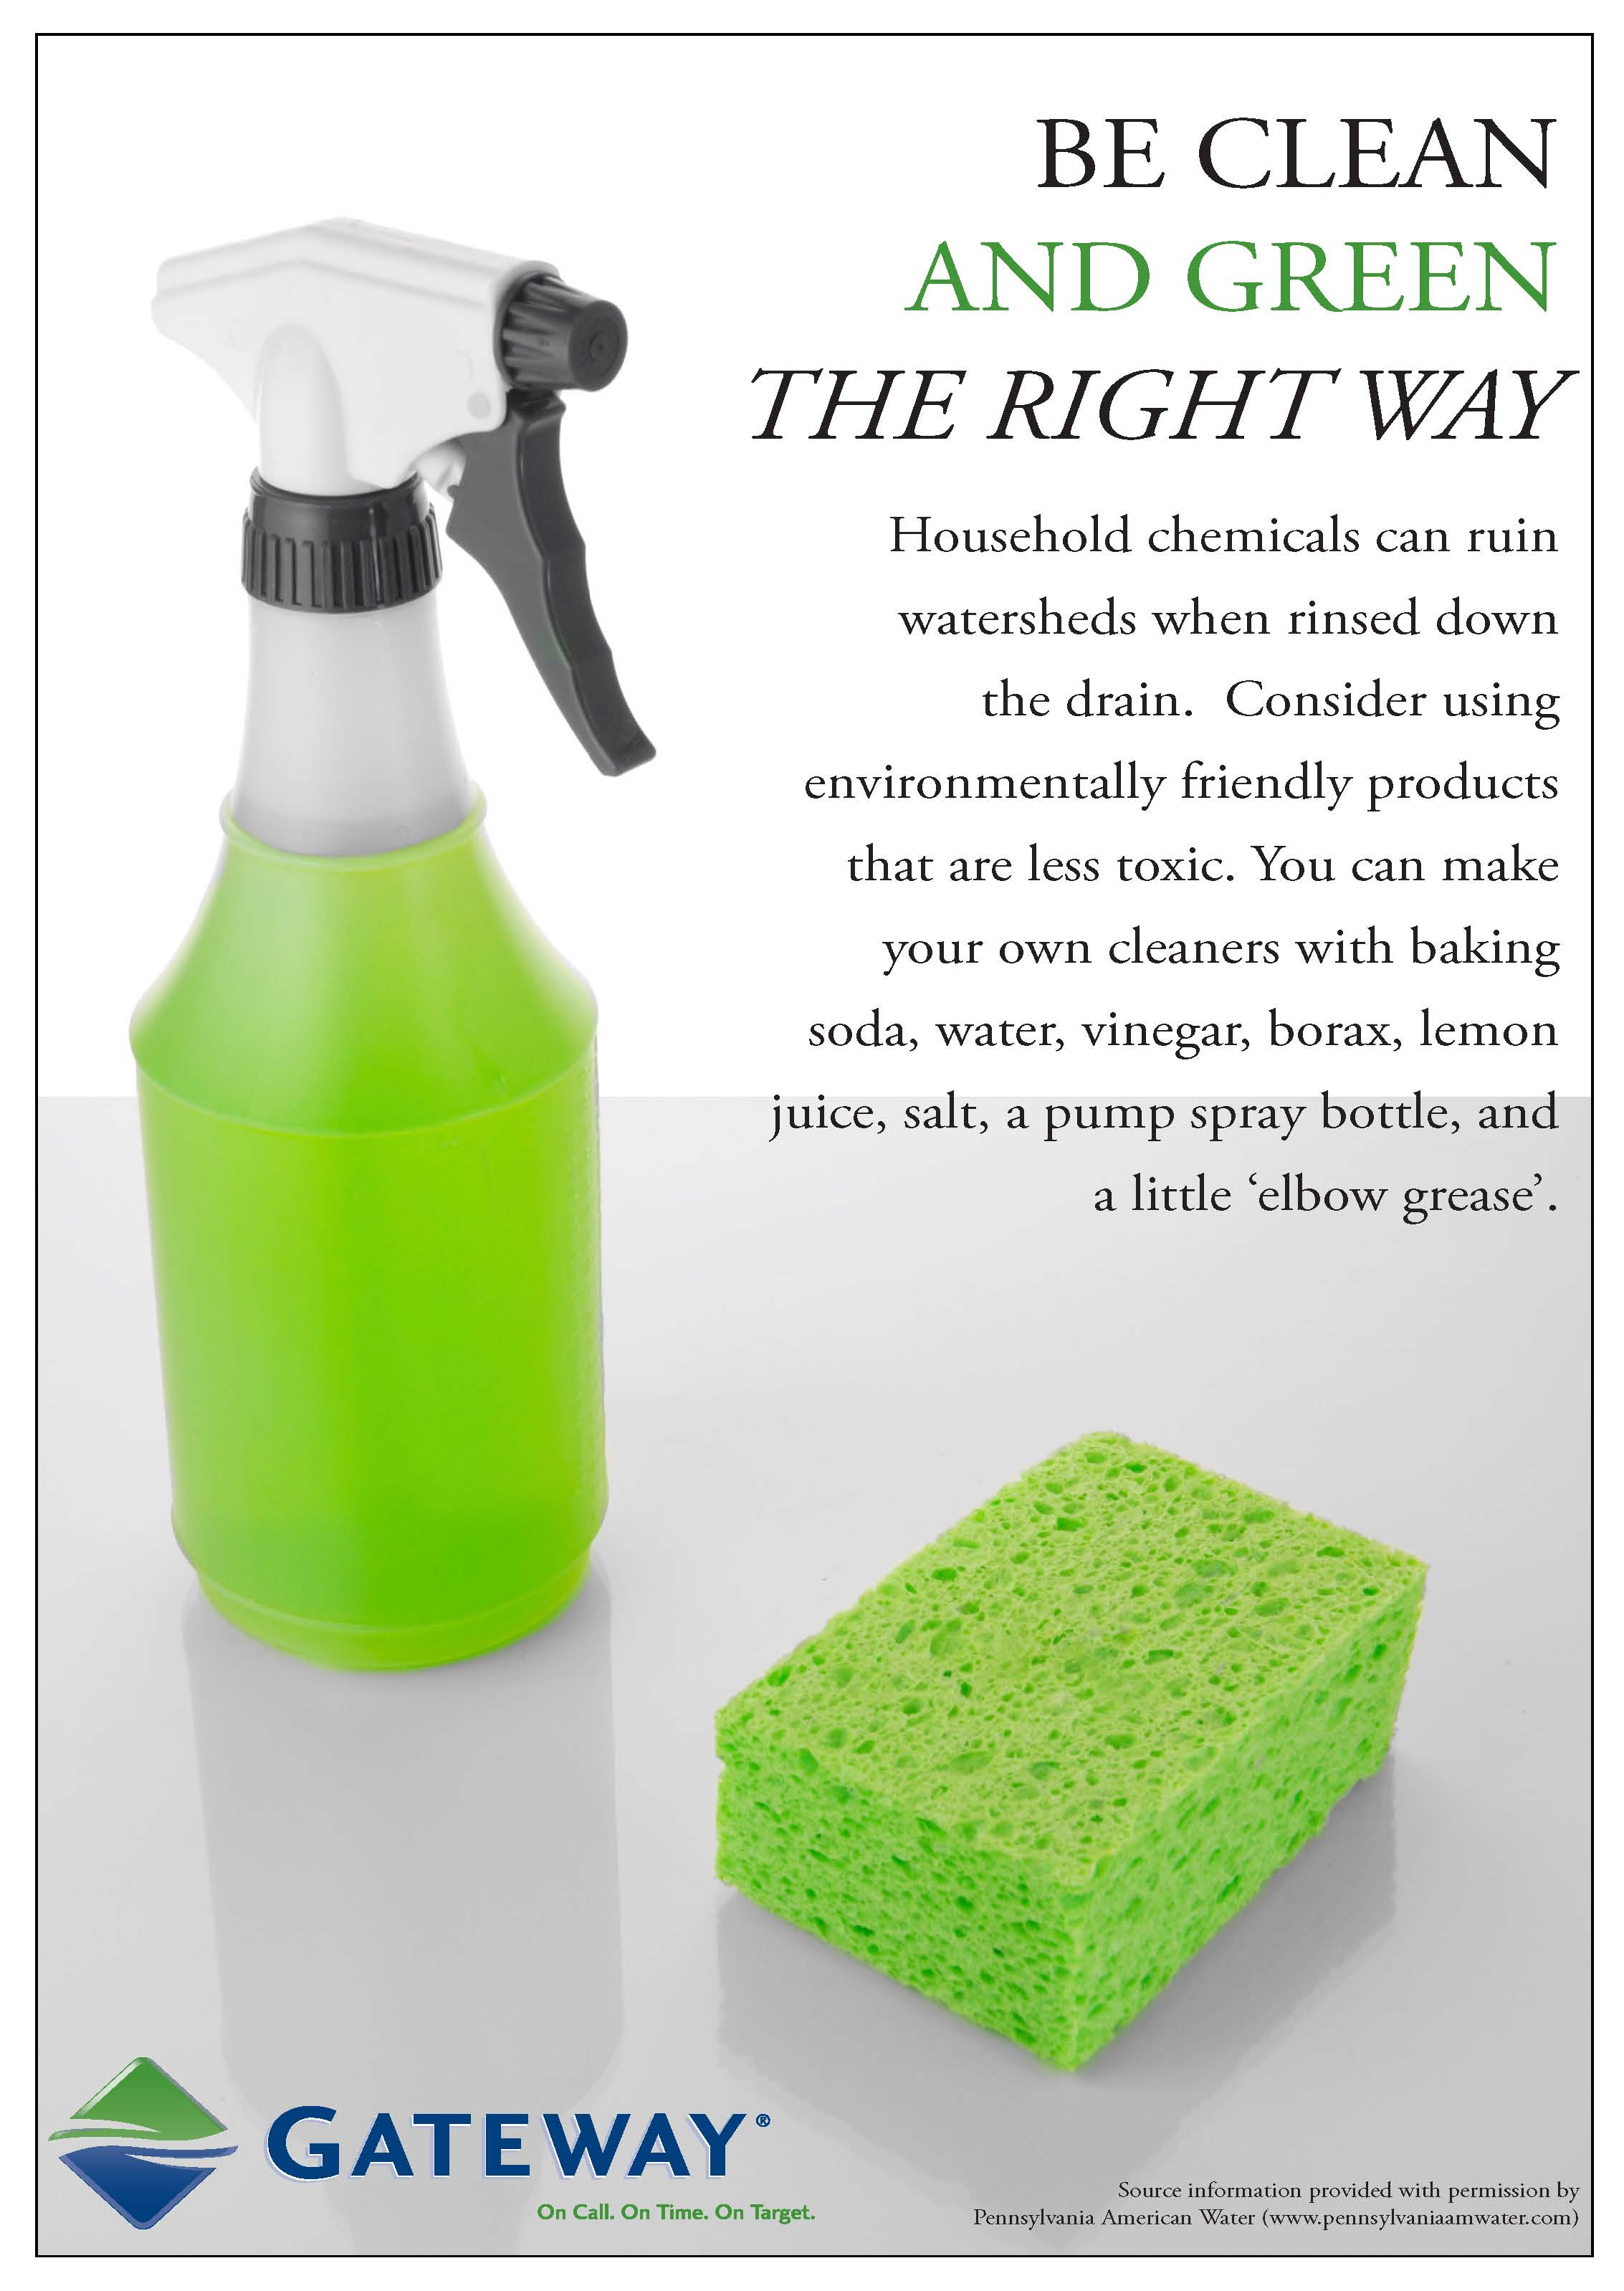 Be Clean and Green - poster.jpg